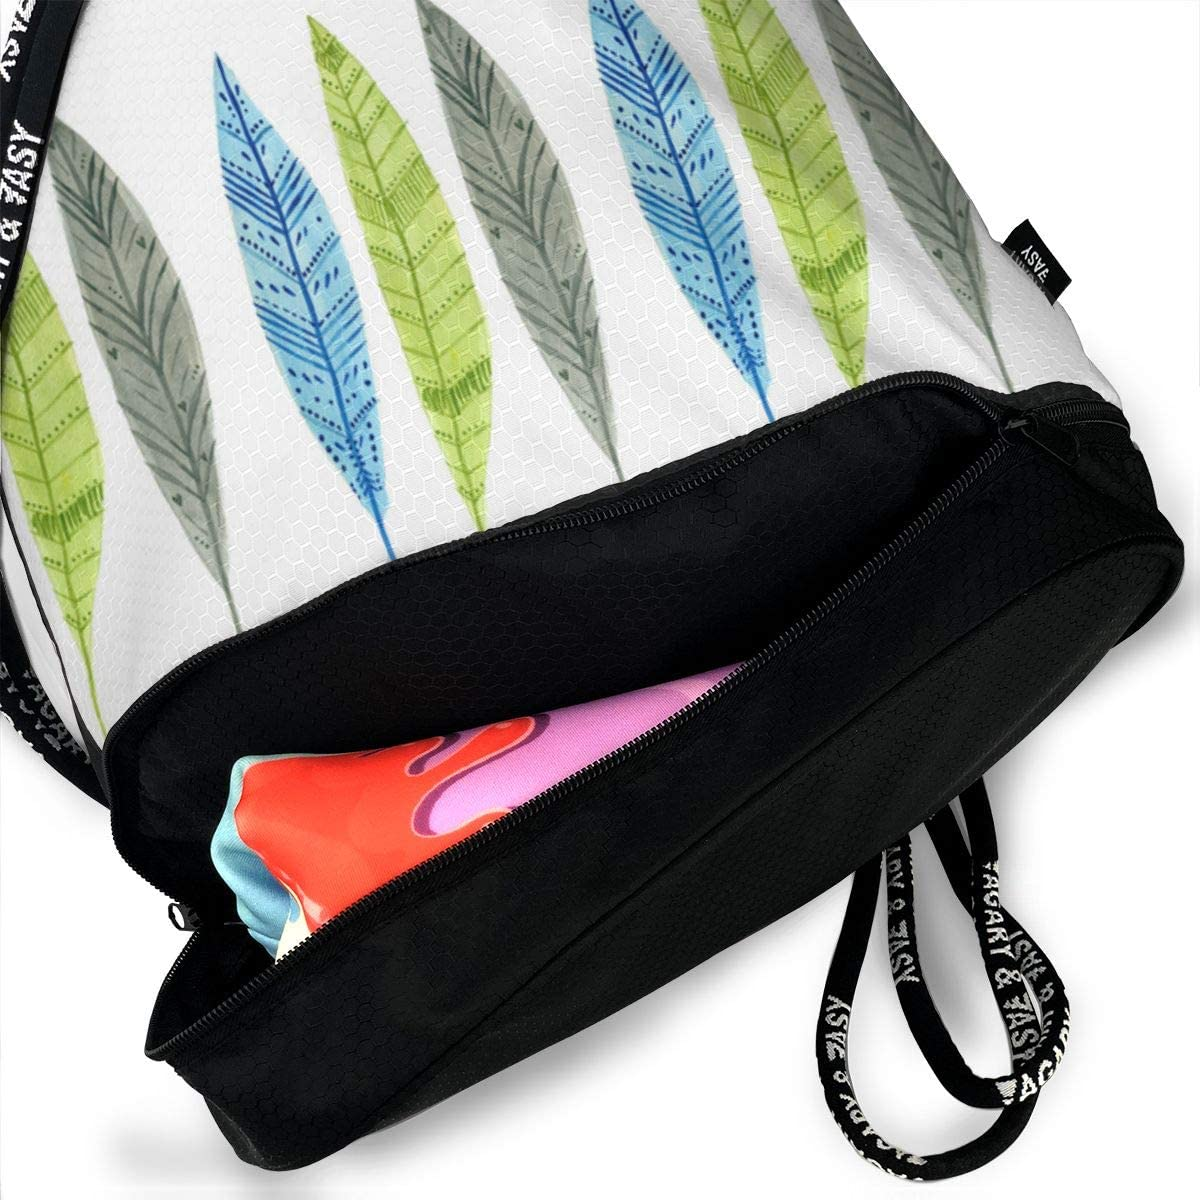 Feathers Drawstring Backpack Sports Athletic Gym Cinch Sack String Storage Bags for Hiking Travel Beach